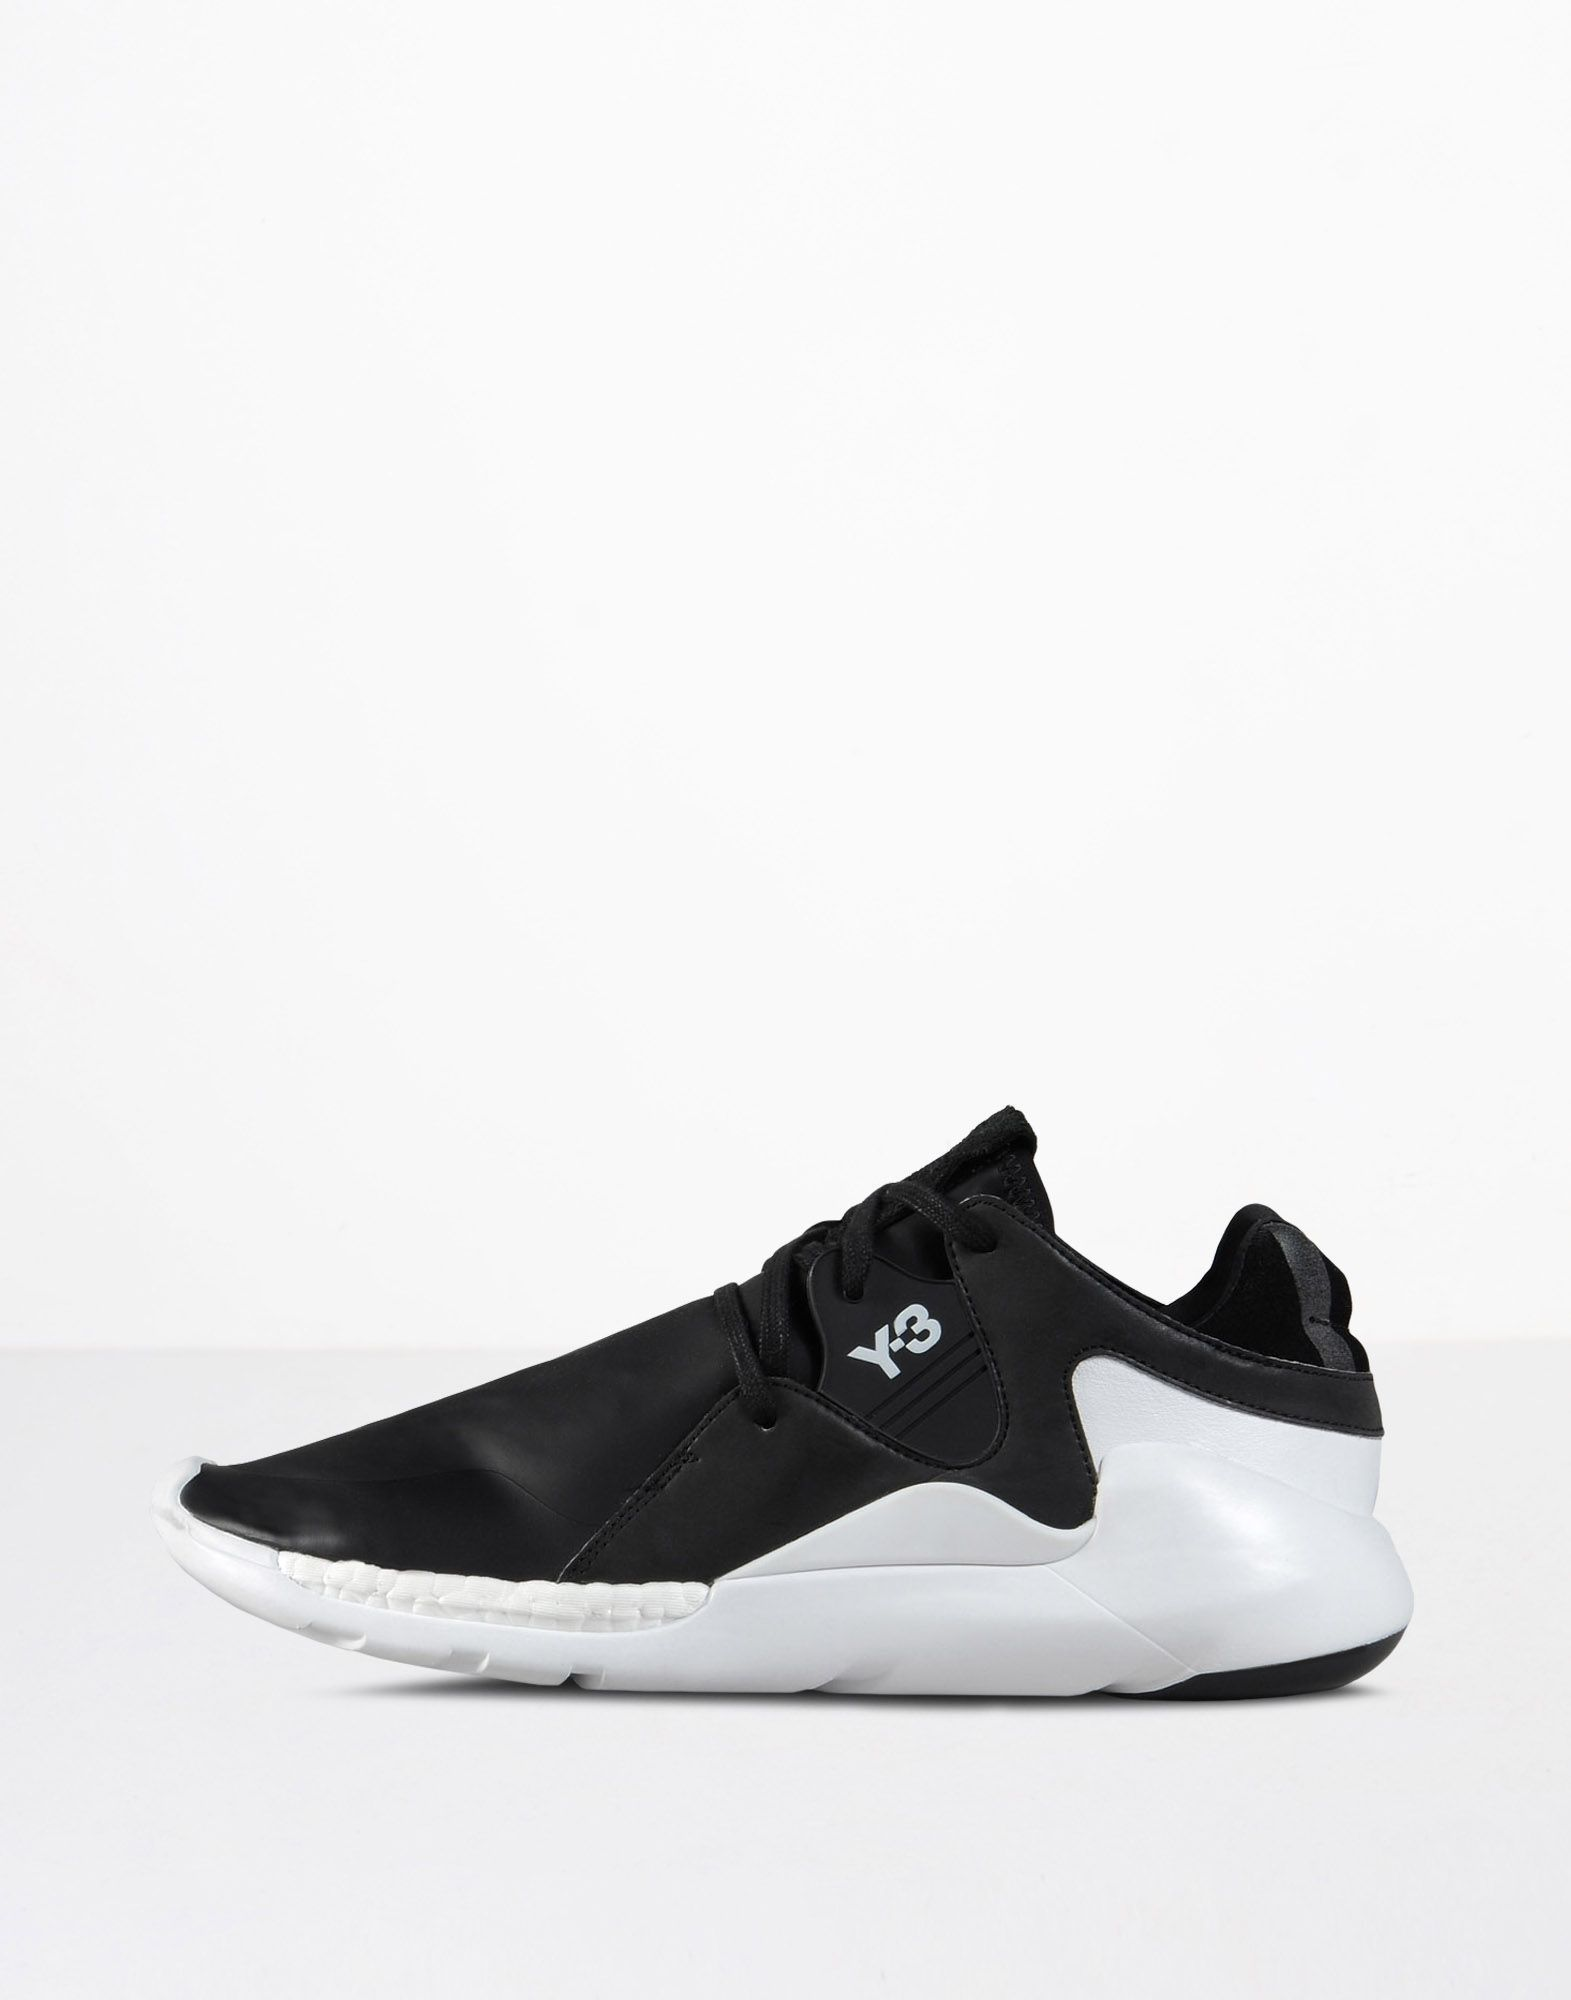 Y-3 FUTURE LOW SHOES man Y-3 adidas | Y-3 | Pinterest | Shoes men, Adidas  and Cod